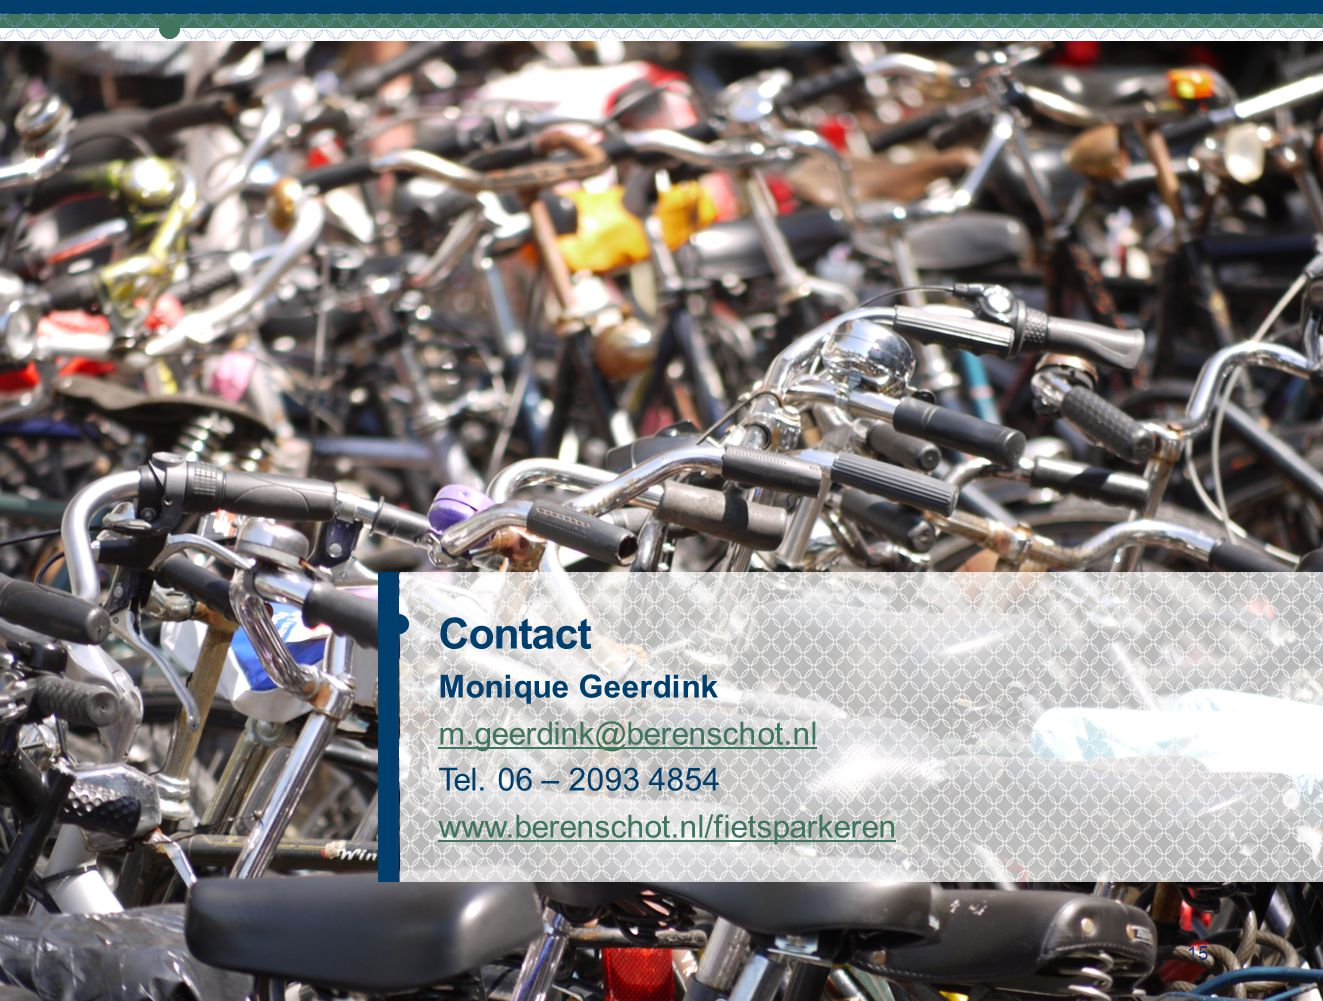 Contact Monique Geerdink m.geerdink@berenschot.nl Tel. 06 – 2093 4854